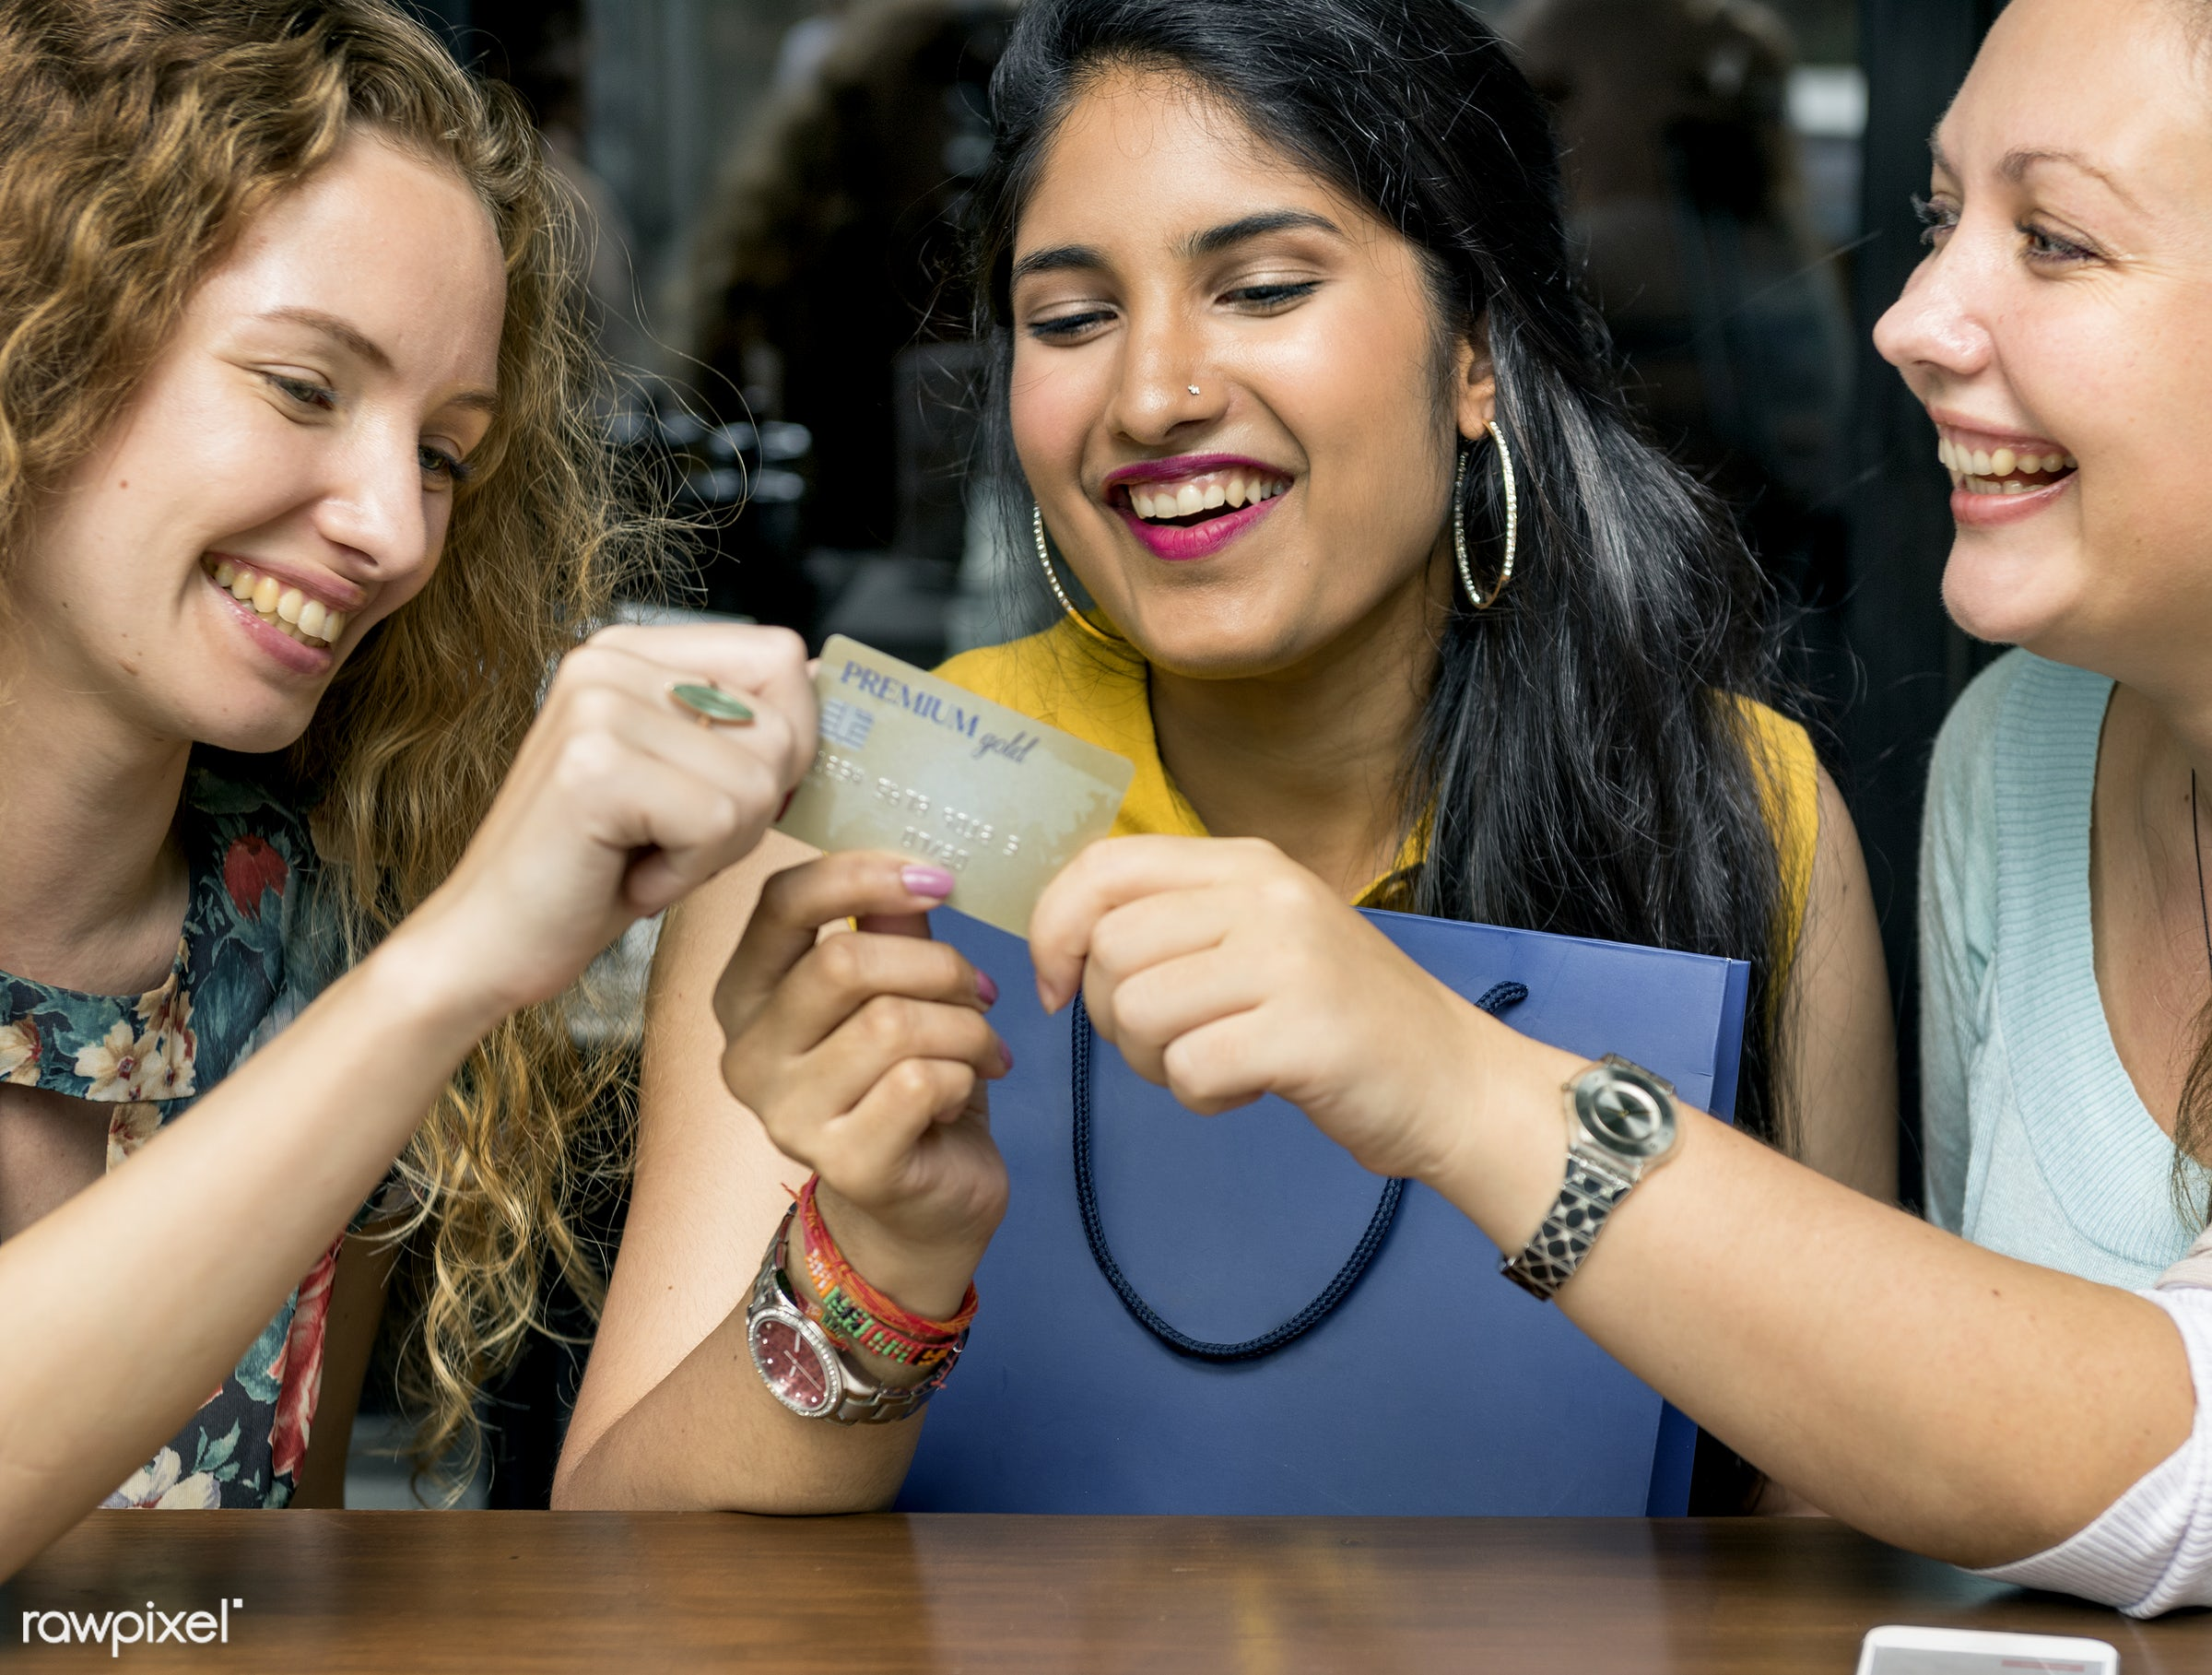 Women shopping with a credit card - card, credit, indian, accessories, bag, beautiful, buyers, cheerful, communication,...